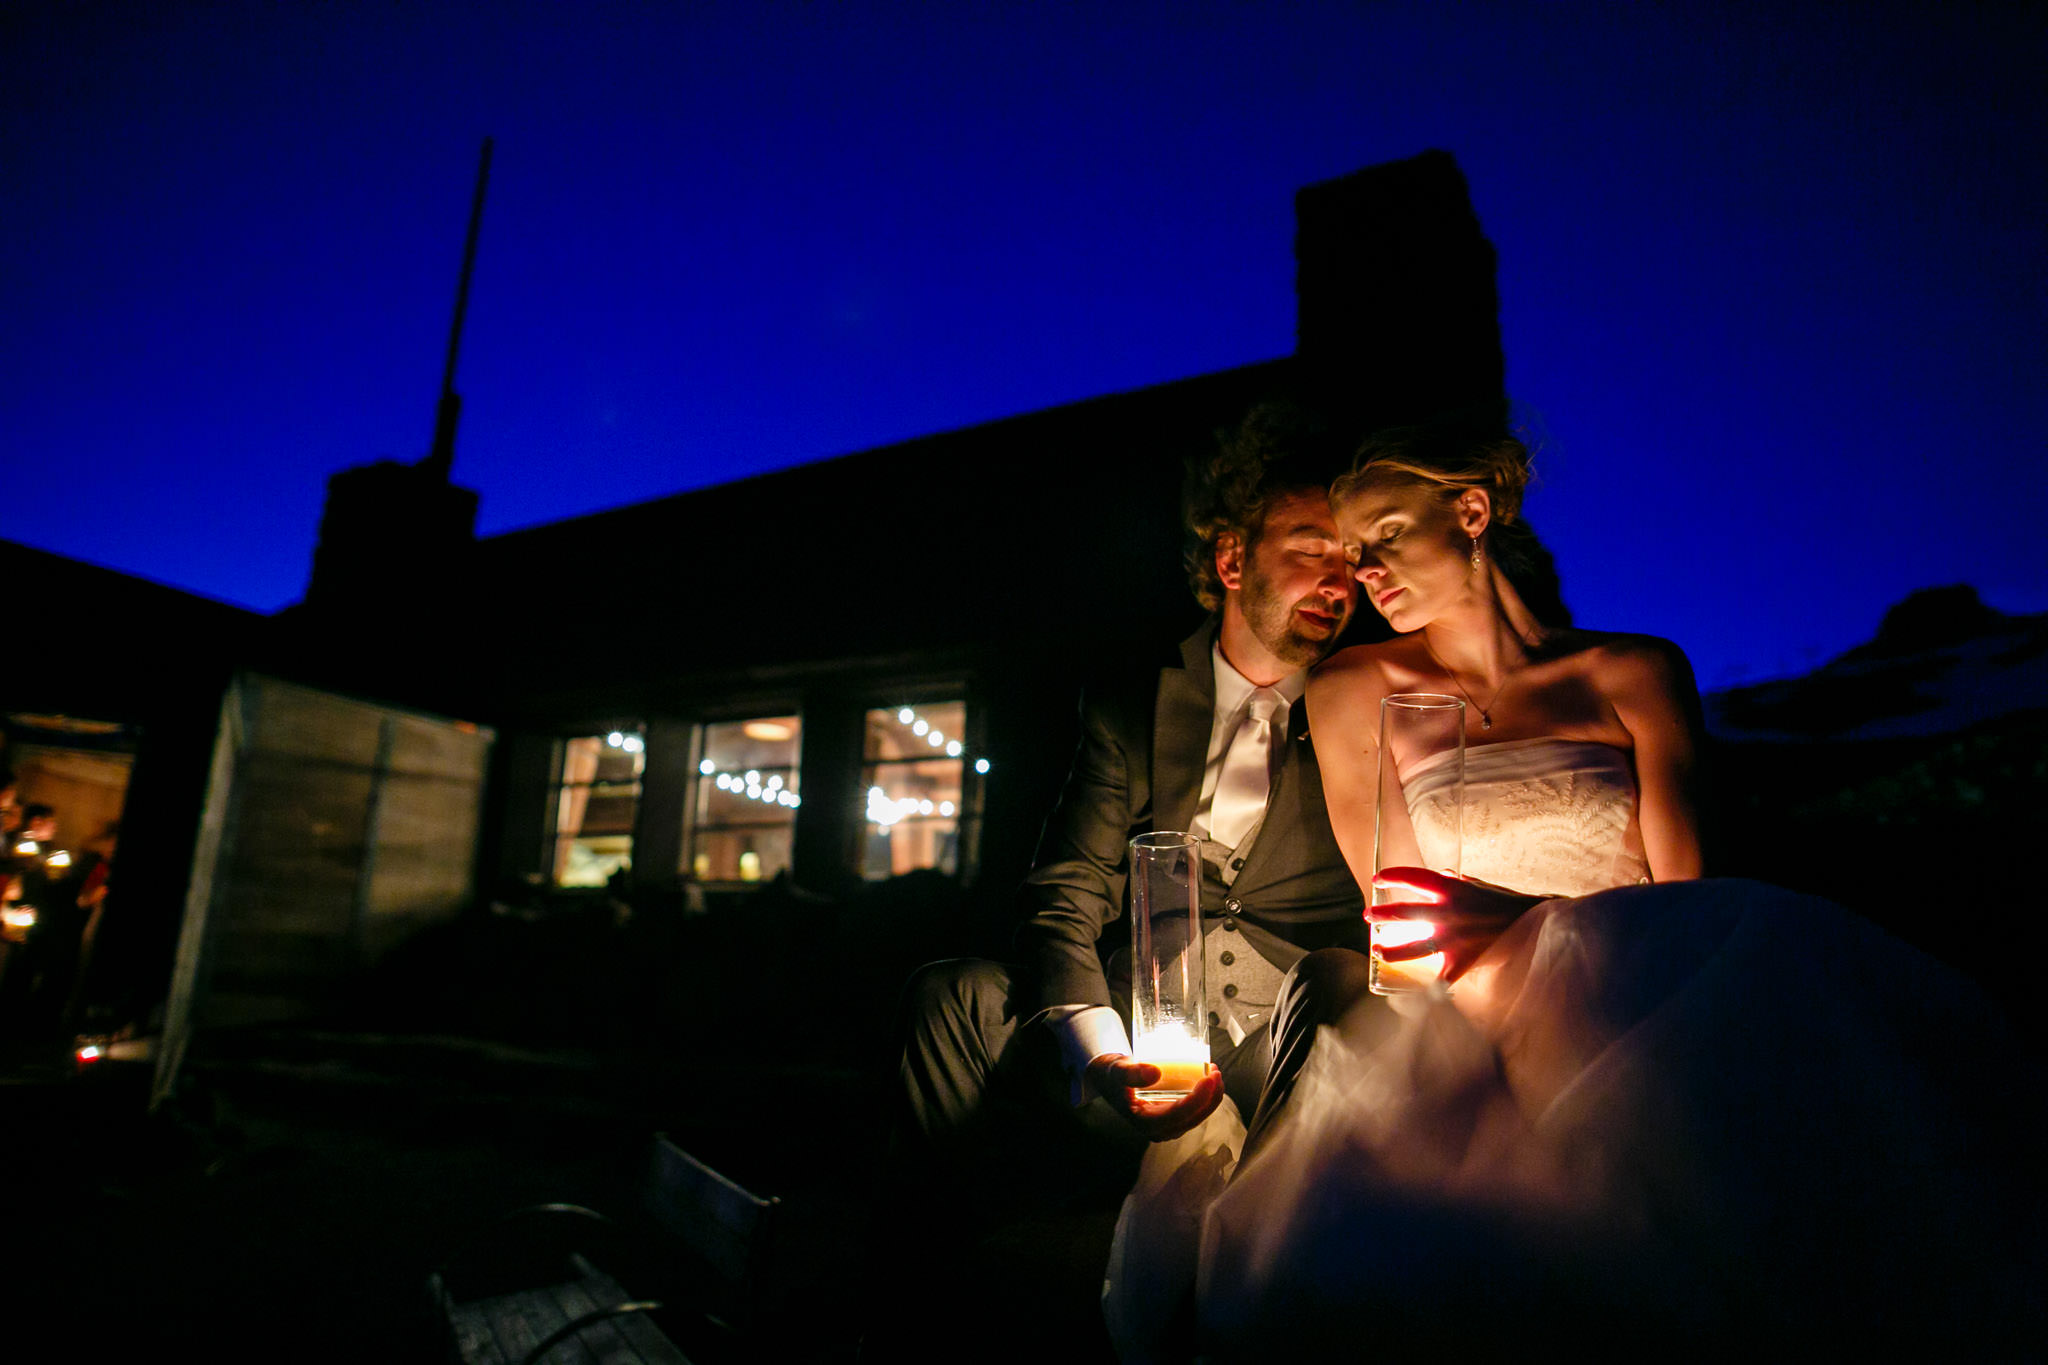 Twighlight shot with bride and groom at Silcox Hut. Photo by JOS studios